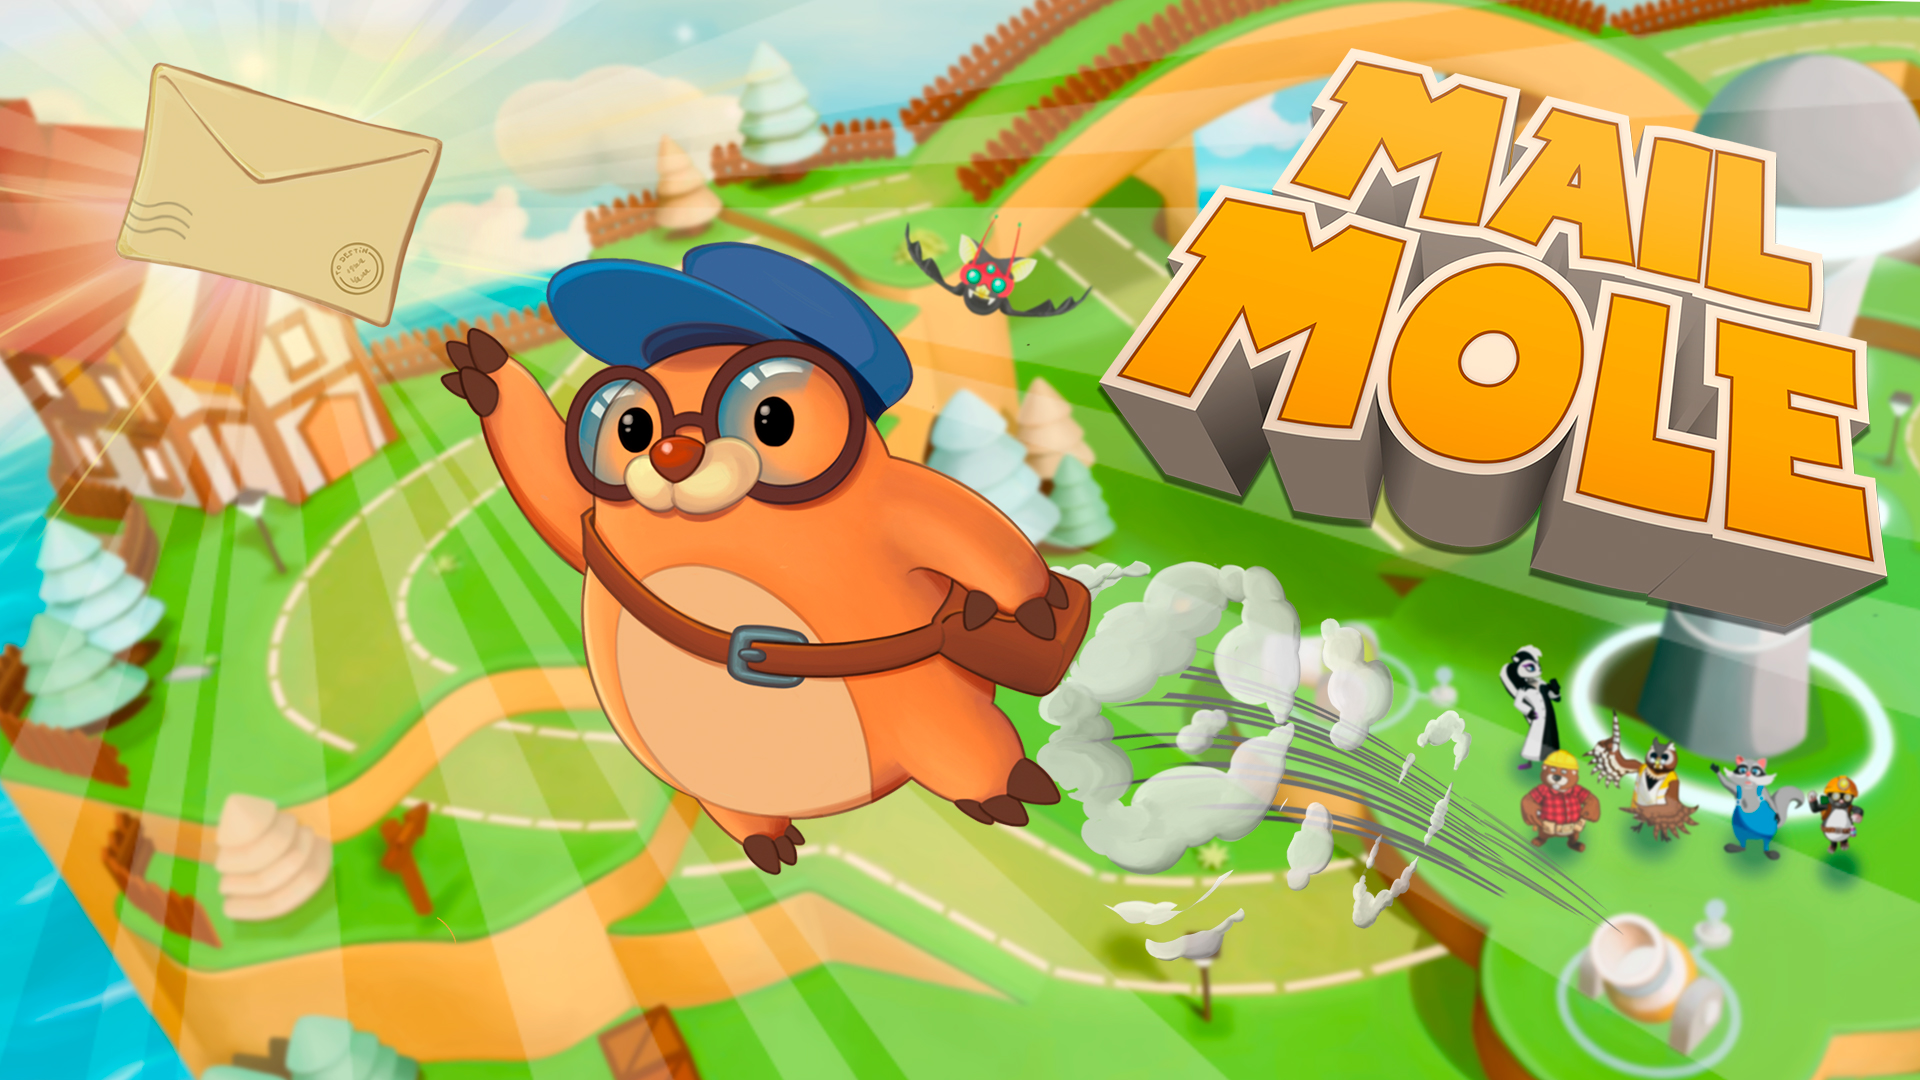 Mail Mole - Talpa Games